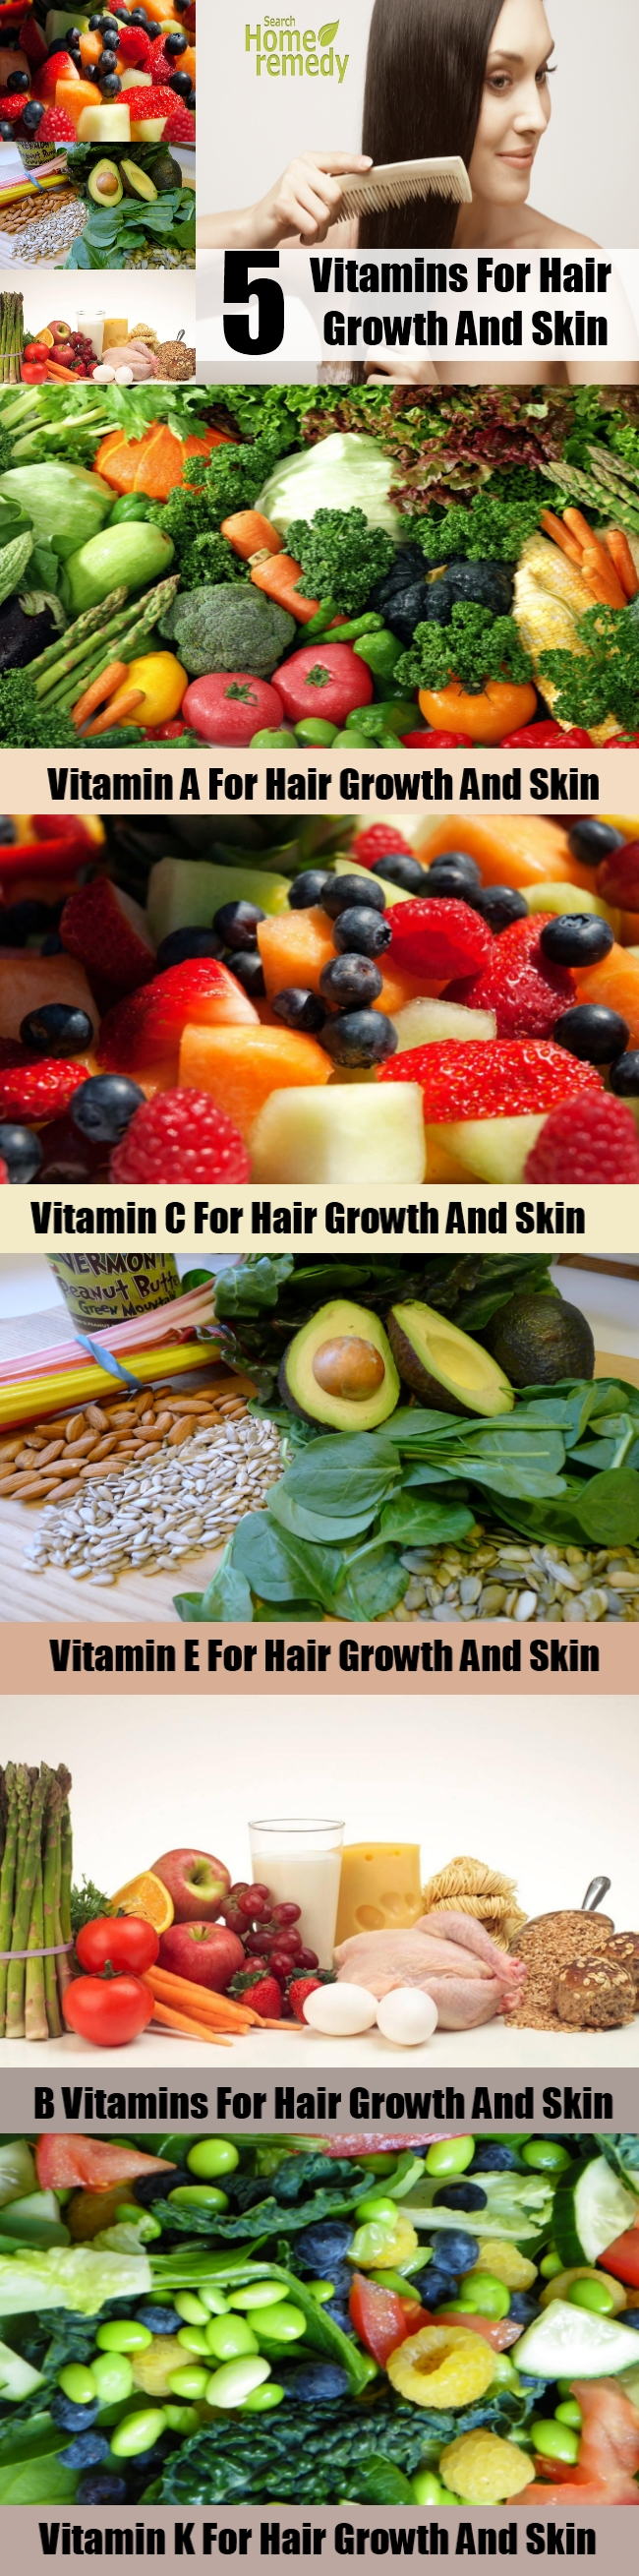 5 Vitamins For Hair Growth And Skin